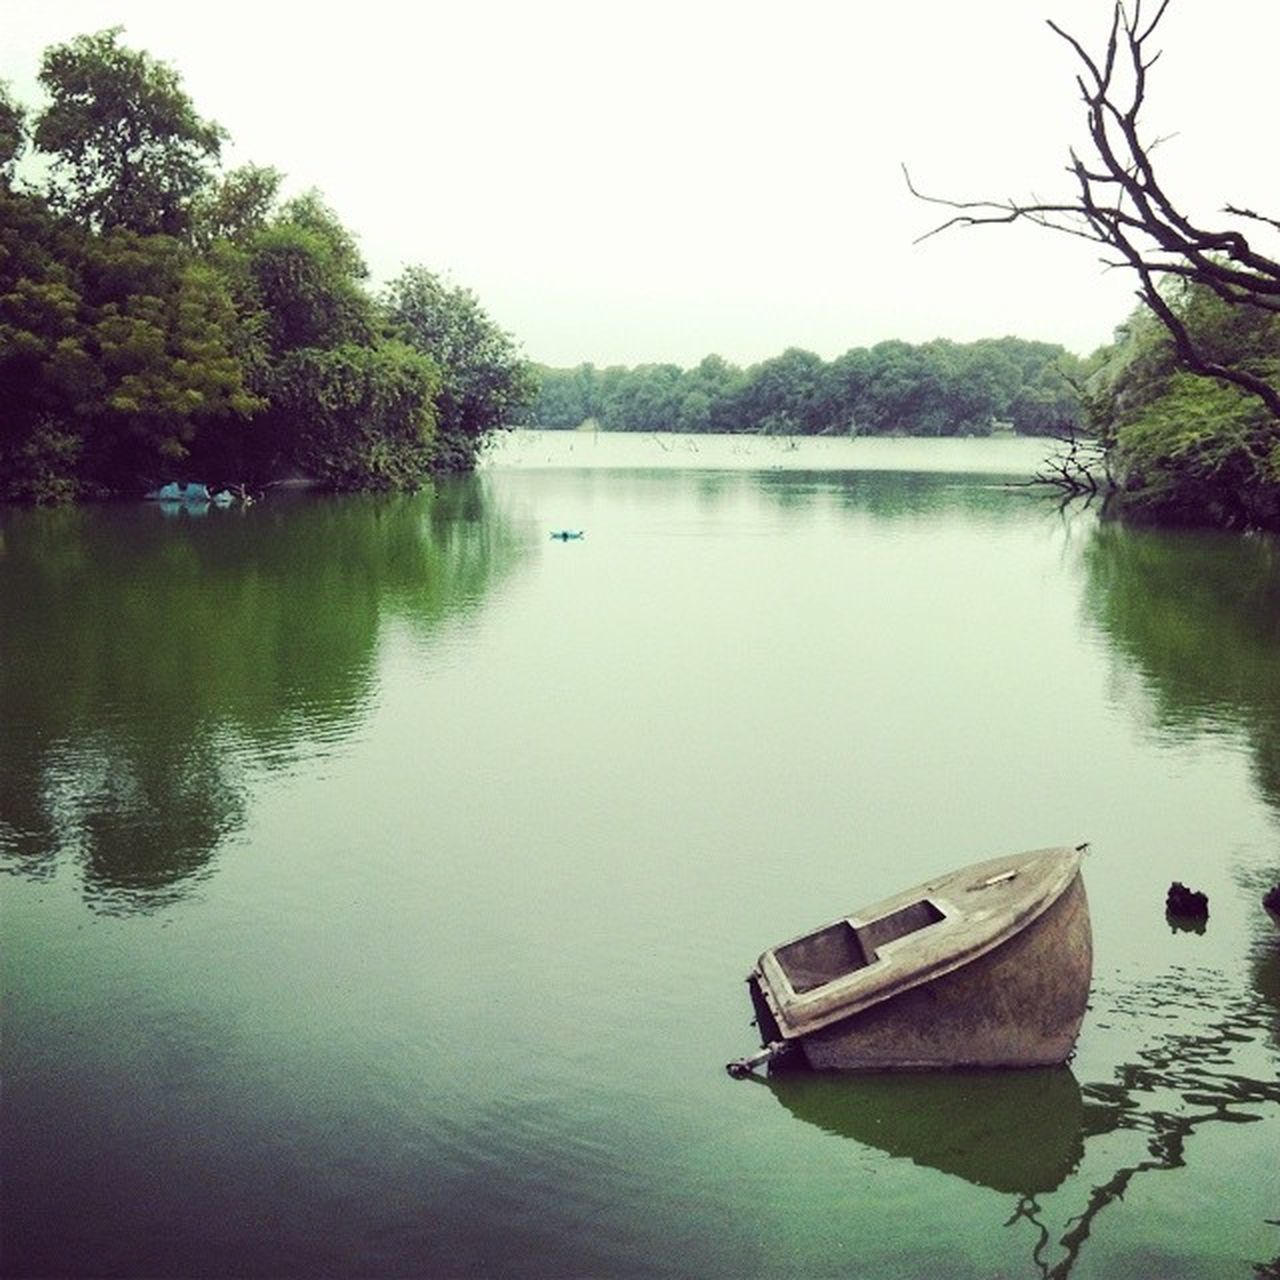 Hauzkhas Village Sirifort Lake Greens Boat